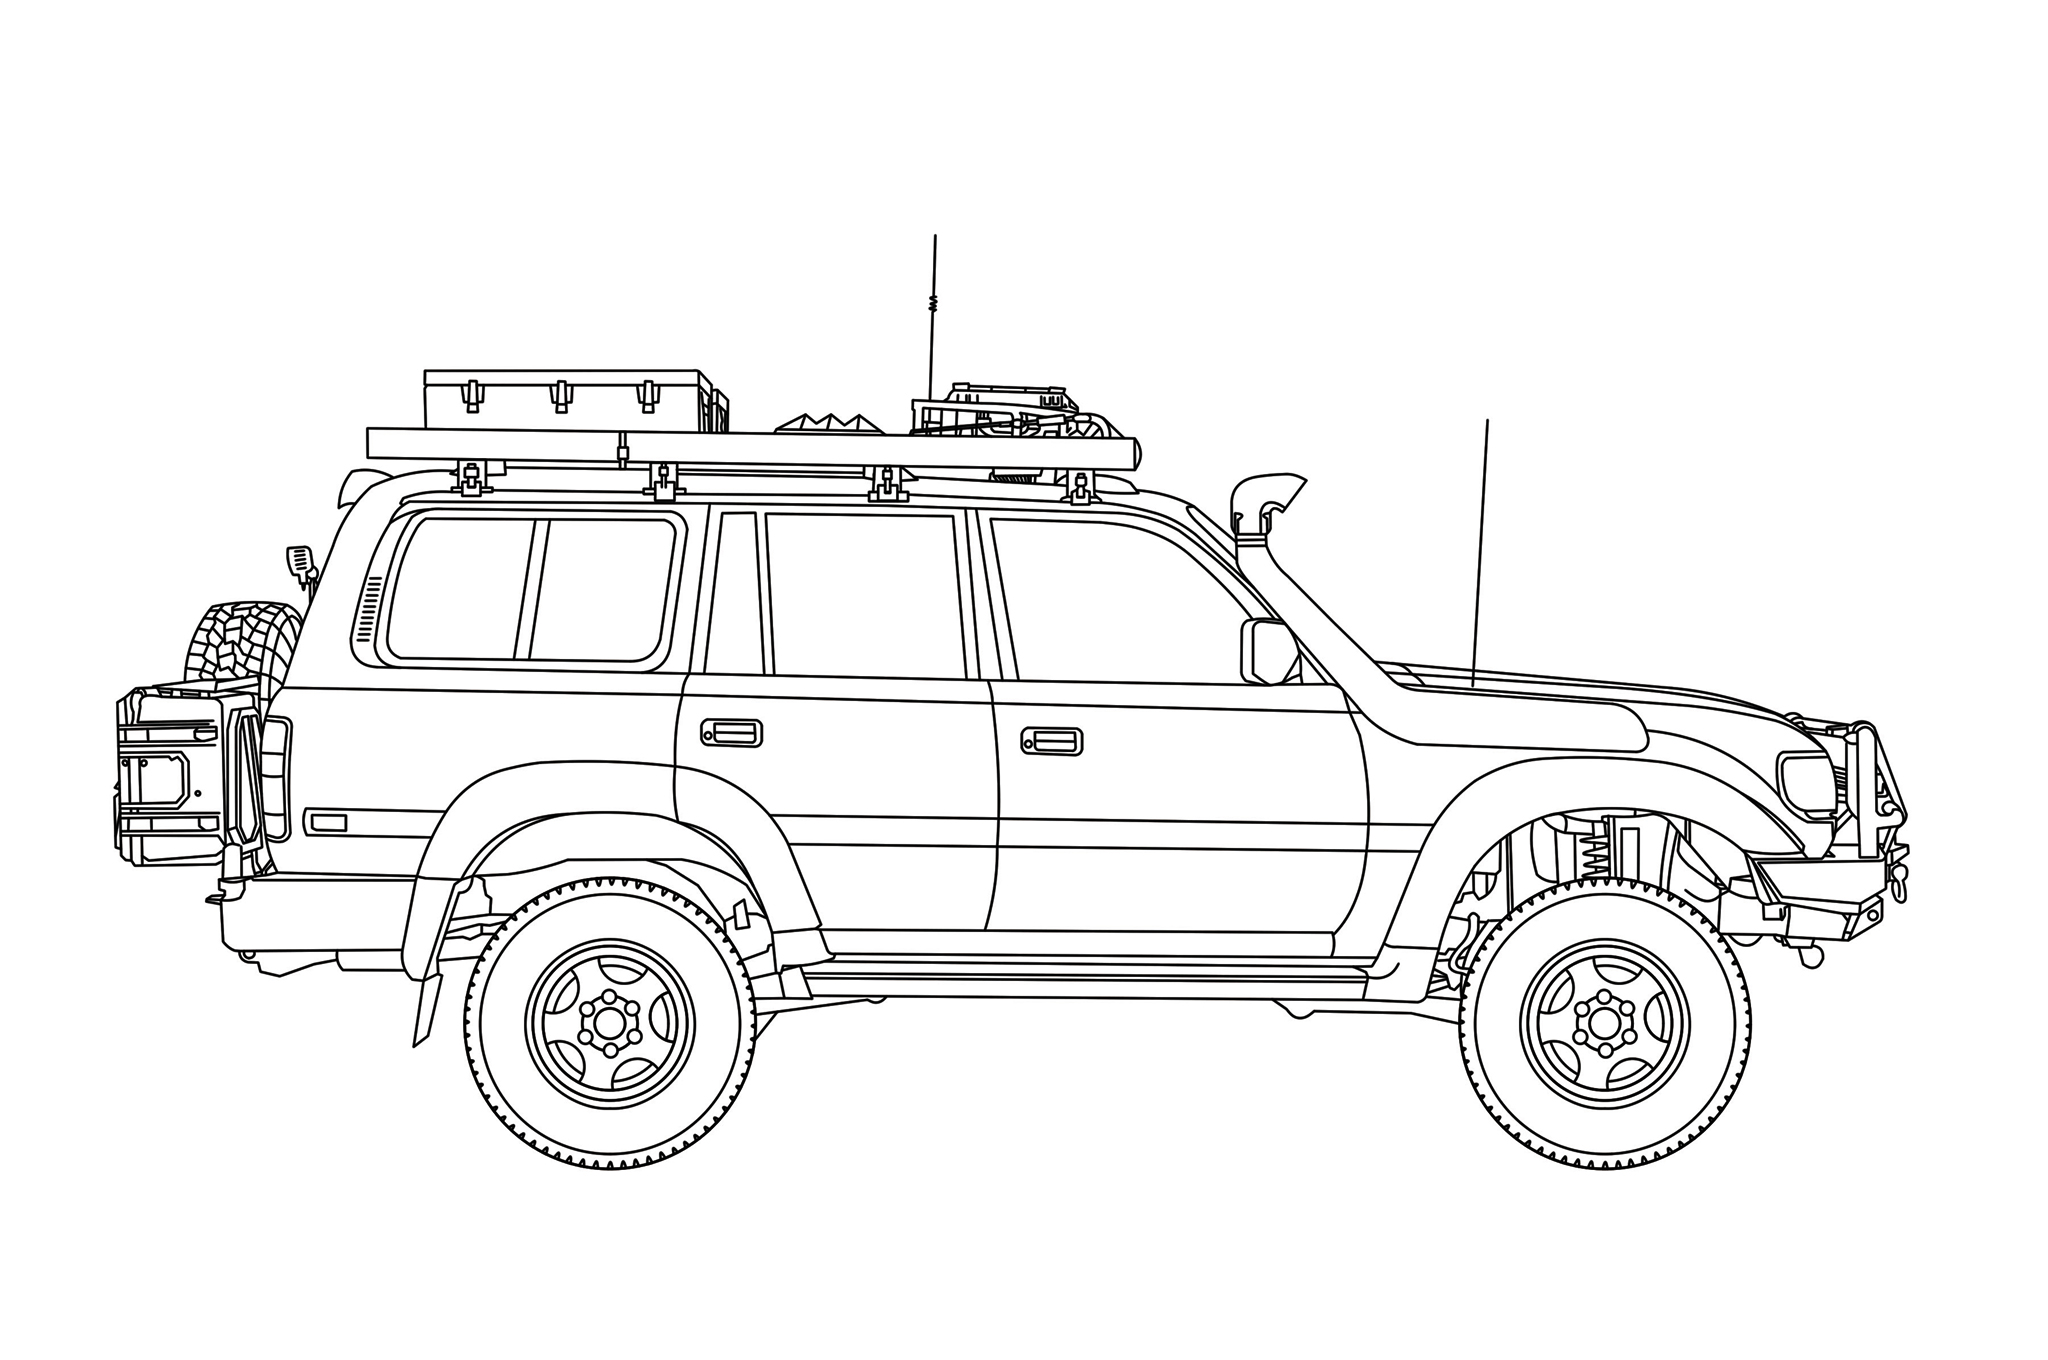 1994 Toyota Land Cruiser - Off-Grid Rig | RECOIL OFFGRID